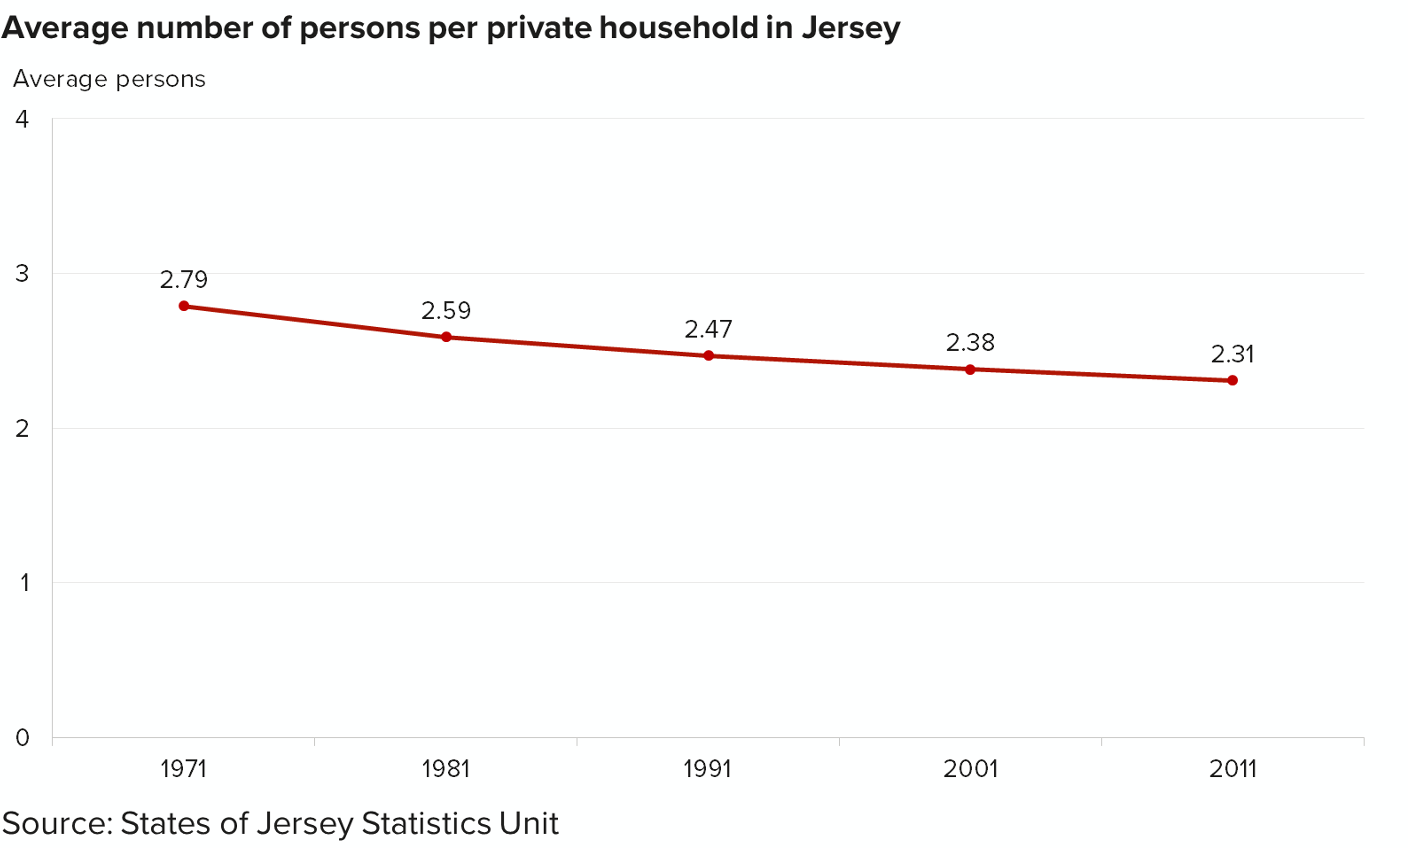 Chart showing average number of persons per private household in Jersey